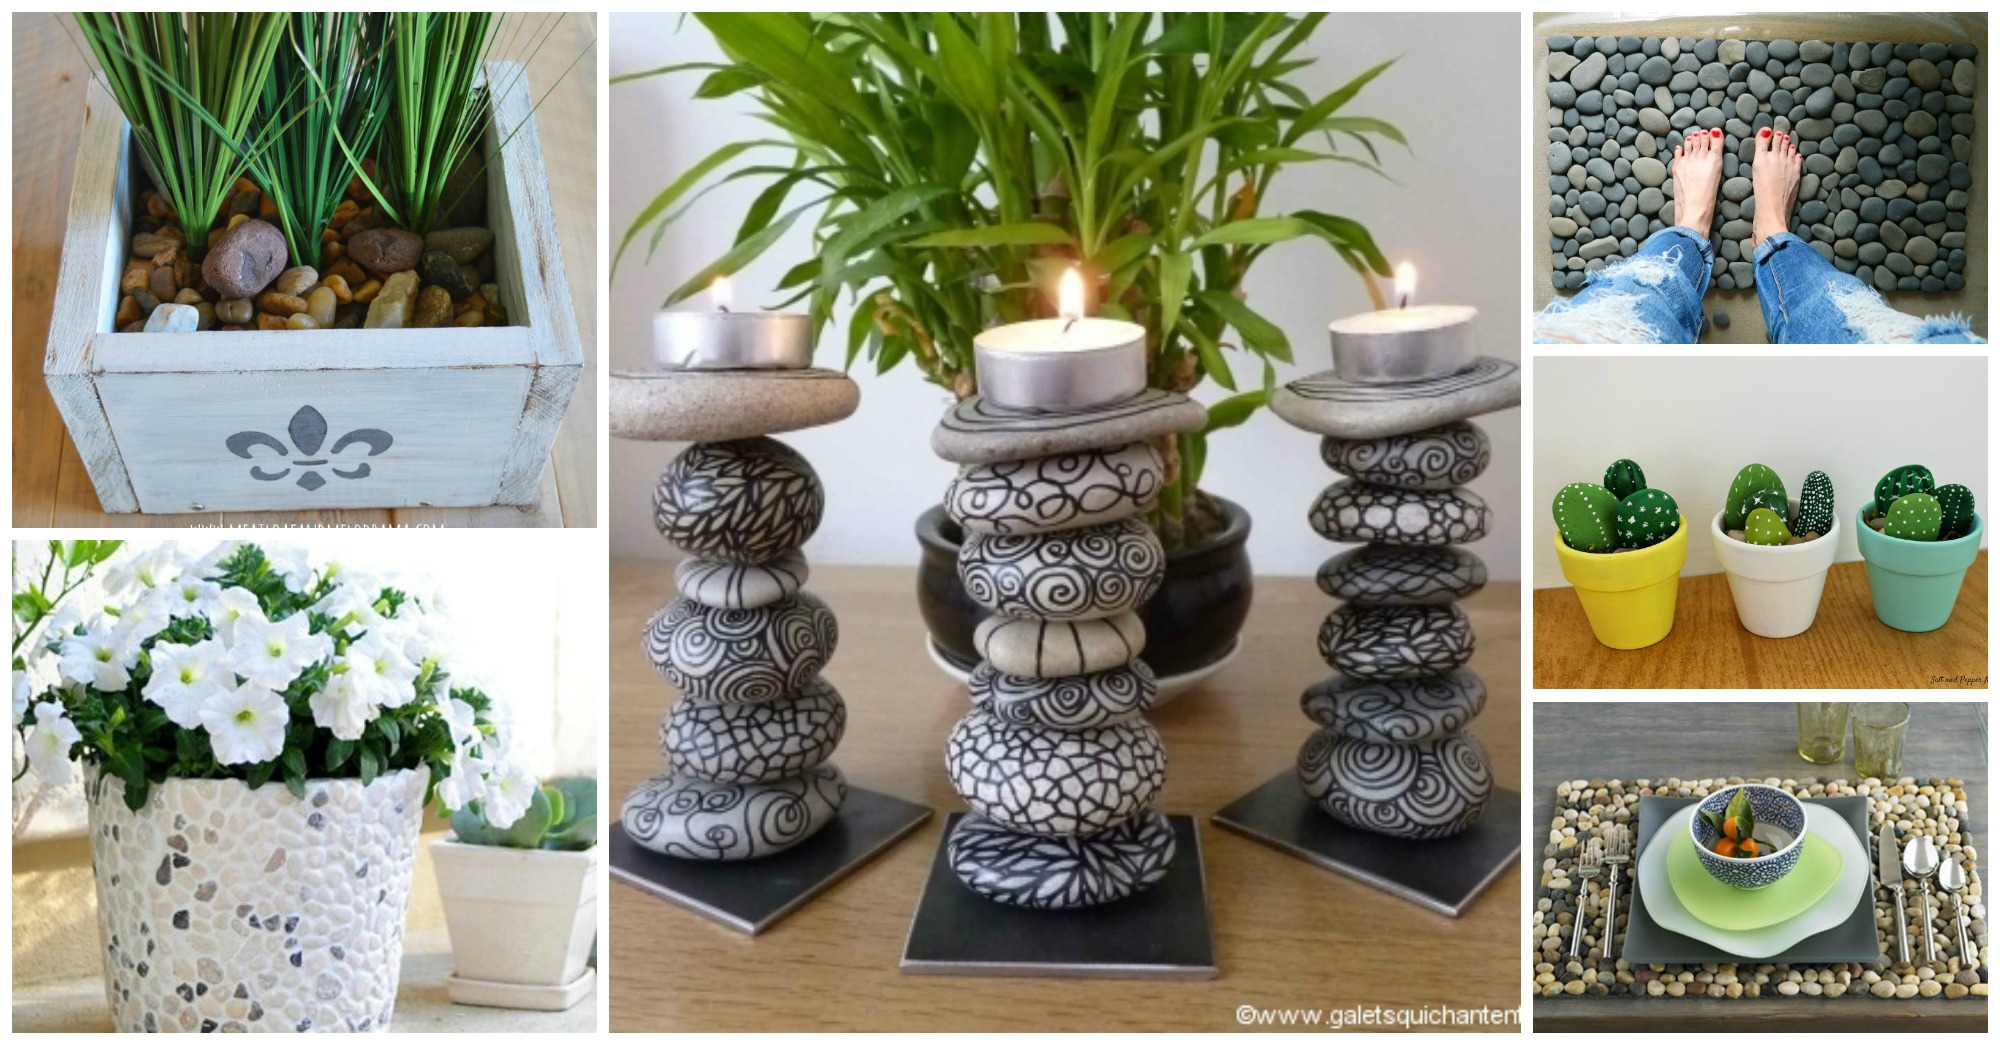 20 diy decorations to make with pebbles for Home decor centerpieces